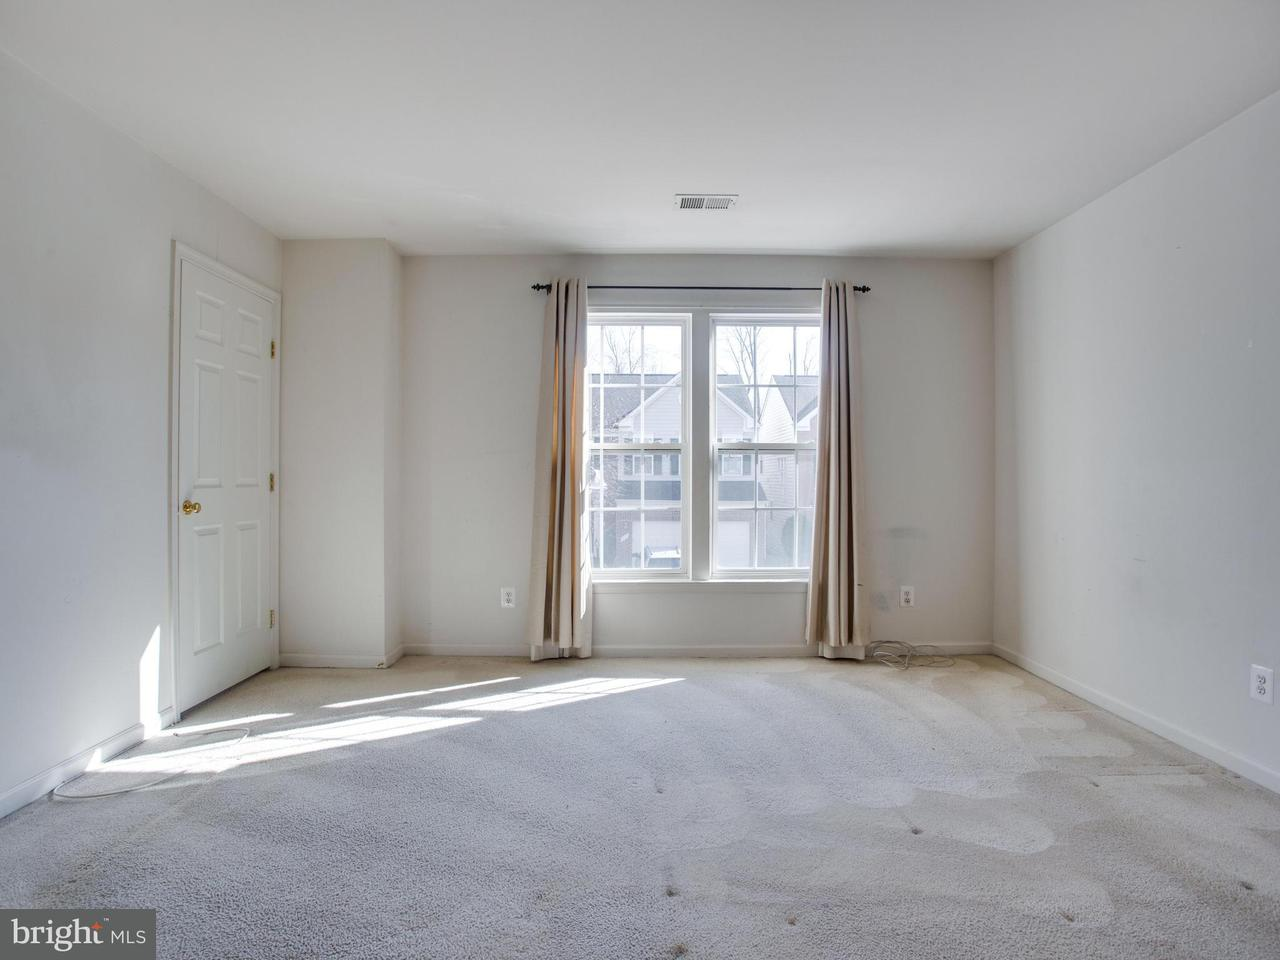 Additional photo for property listing at 8008 George Fox Place 8008 George Fox Place 洛顿, 弗吉尼亚州 22079 美国